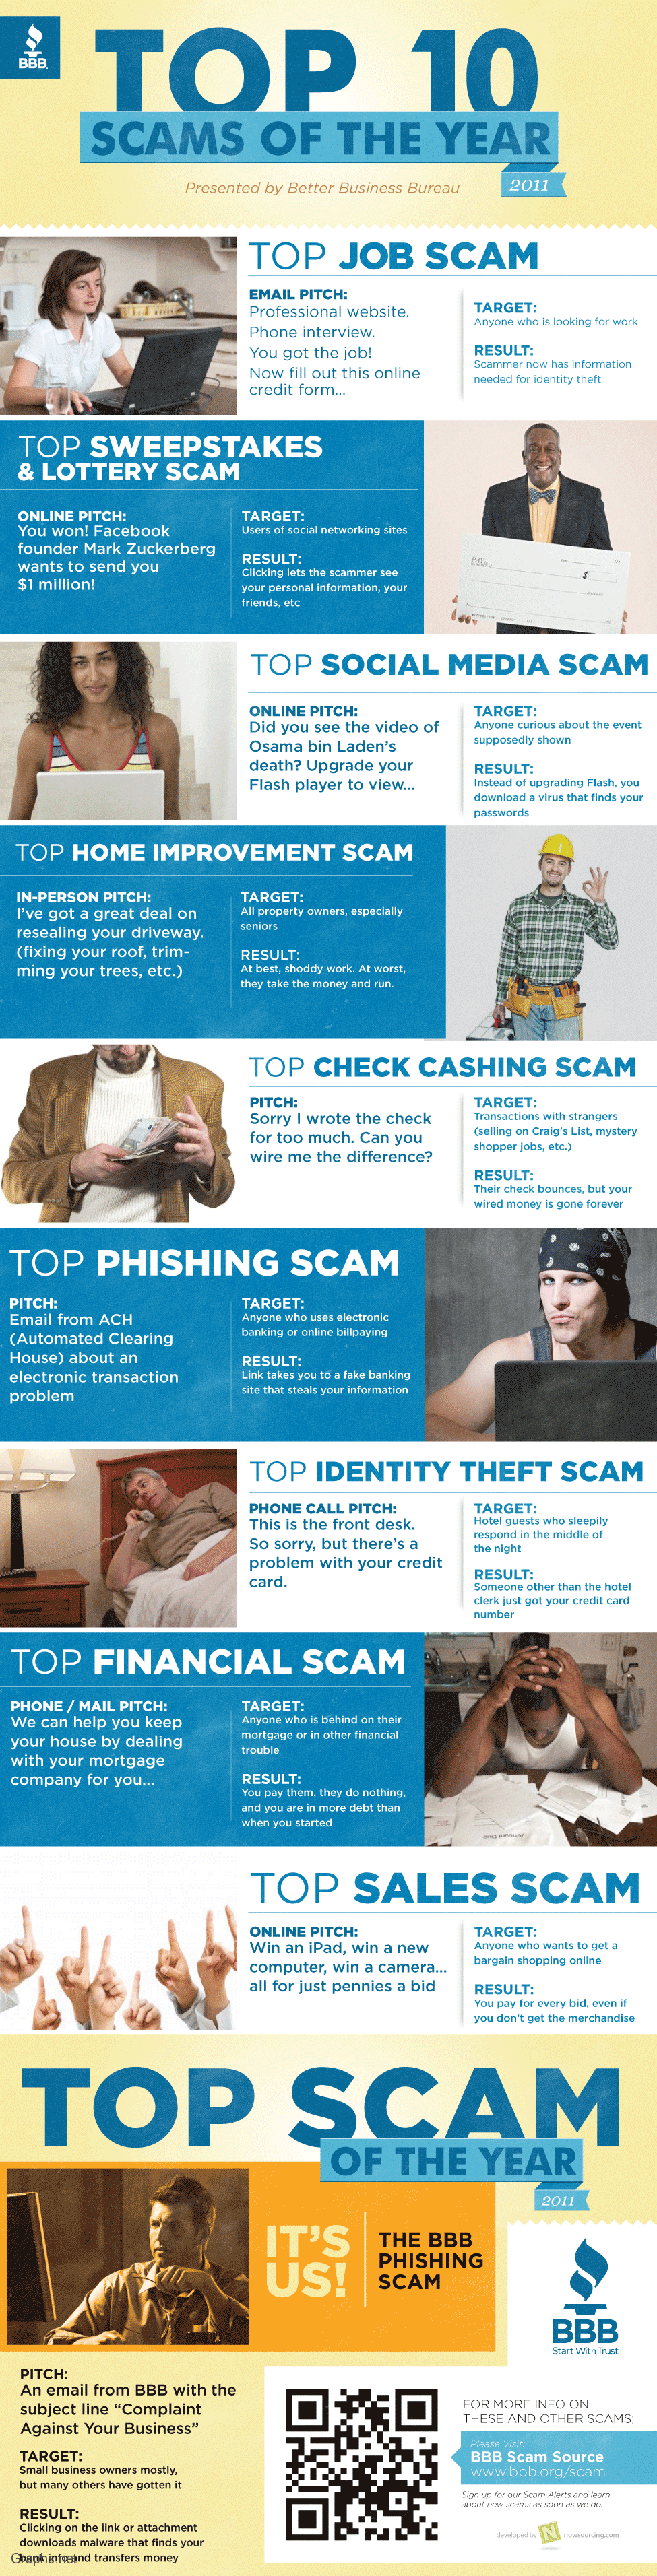 Top 10 Scams Over the Internet